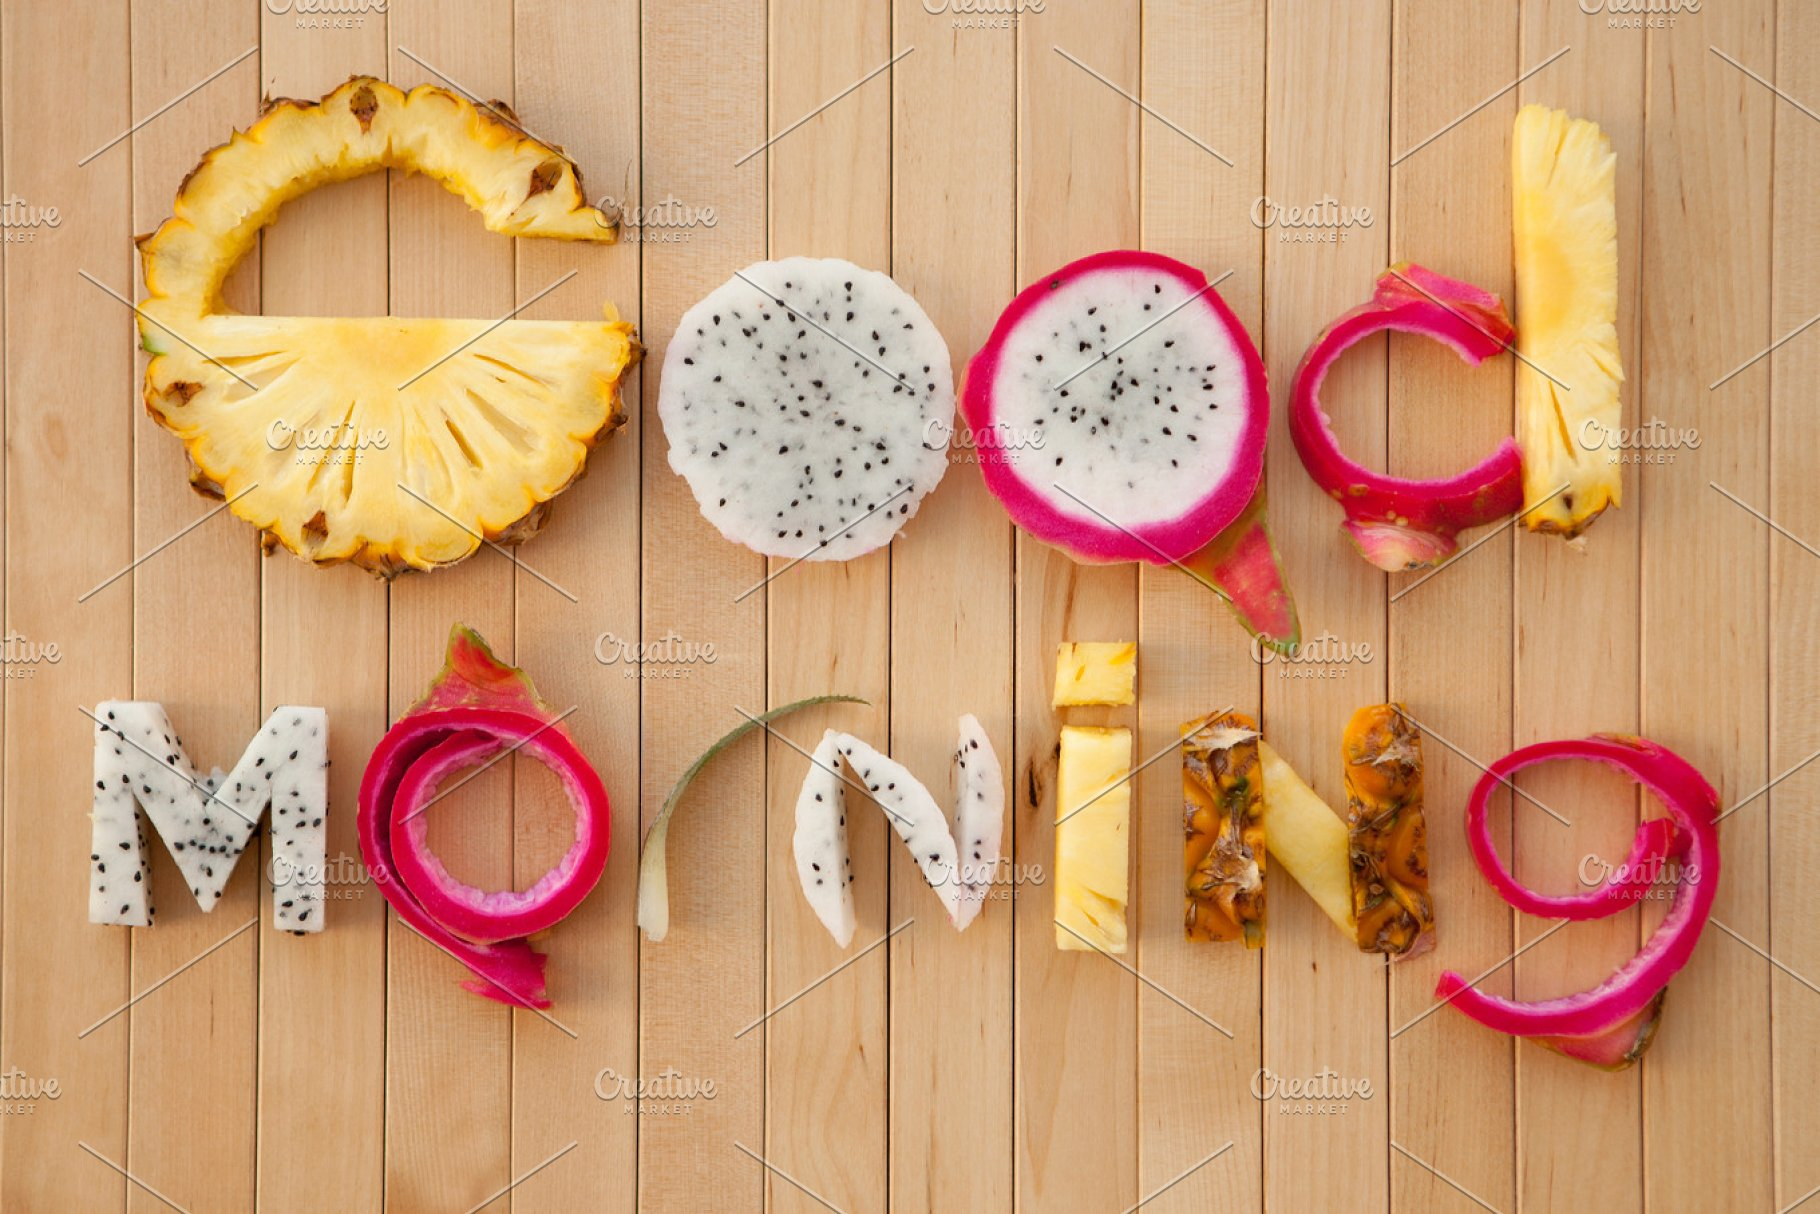 Good Morning Lettering Fruits Food Drink Photos Creative Market